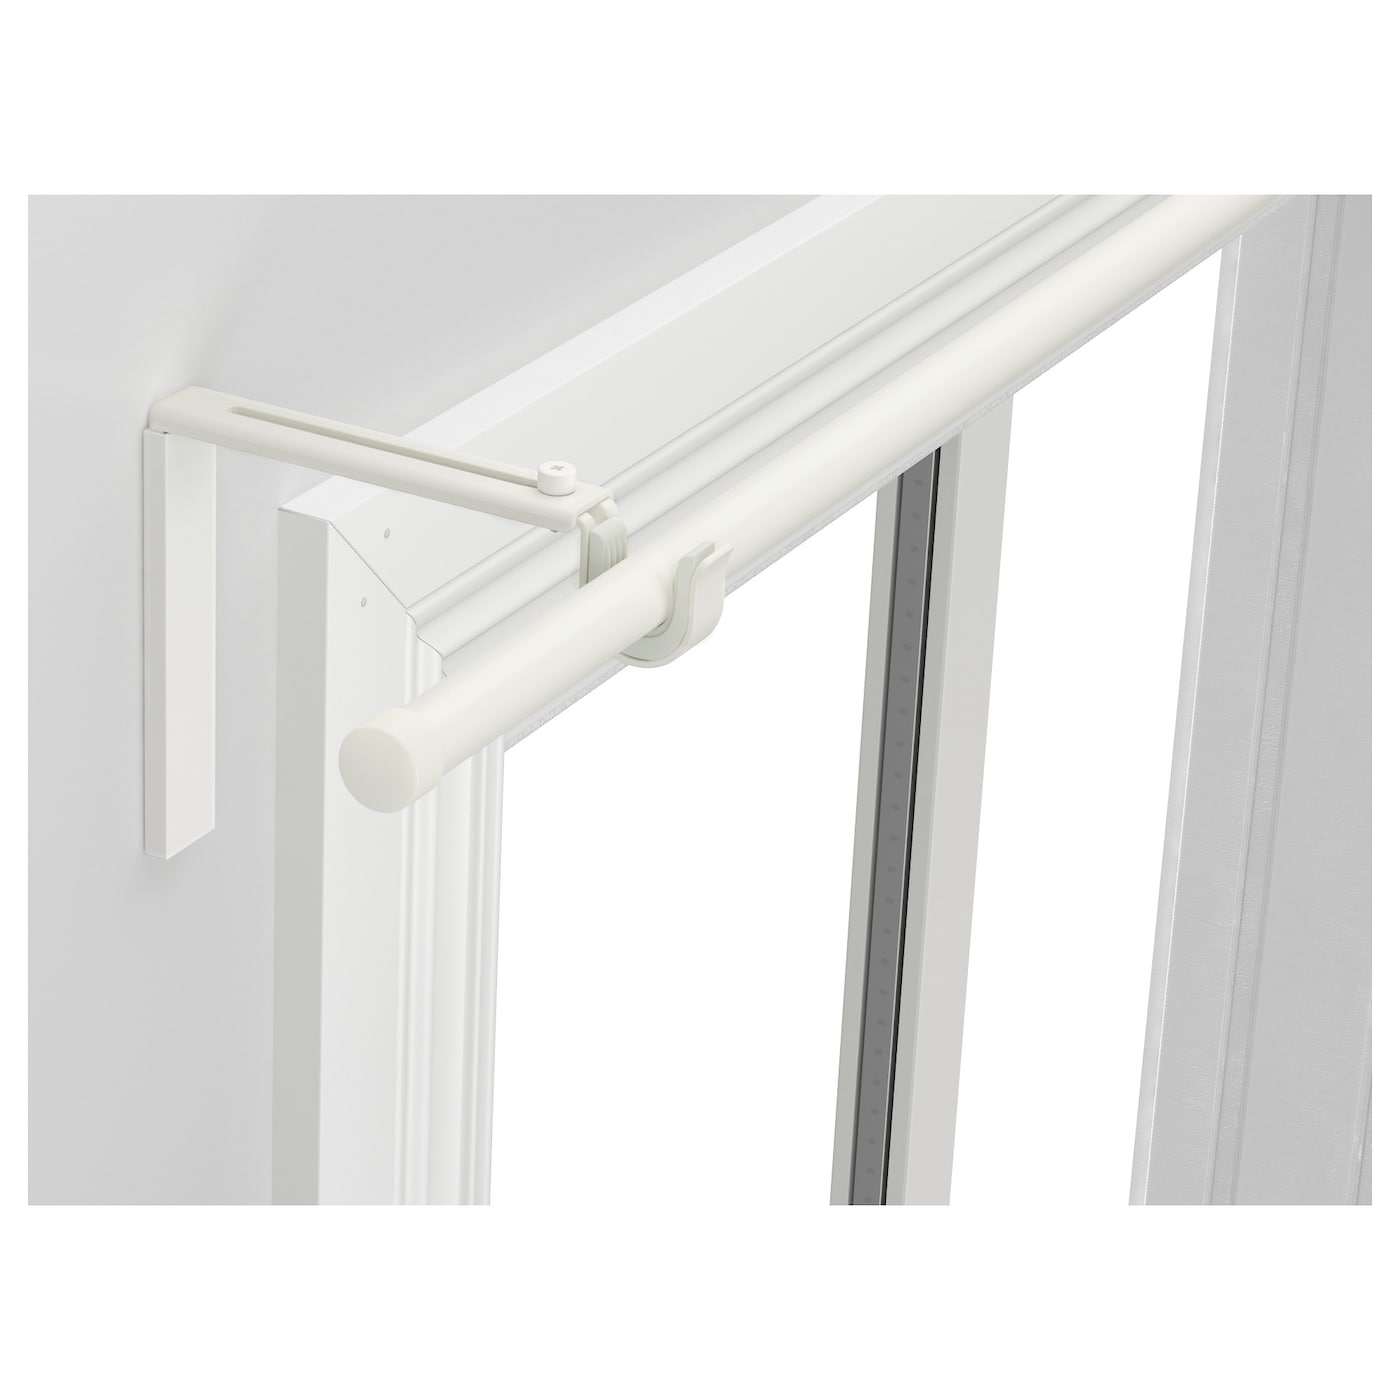 rÄcka curtain rod combination white  cm  ikea - ikea rÄcka curtain rod combination can be mounted on the wall or ceilingthe length